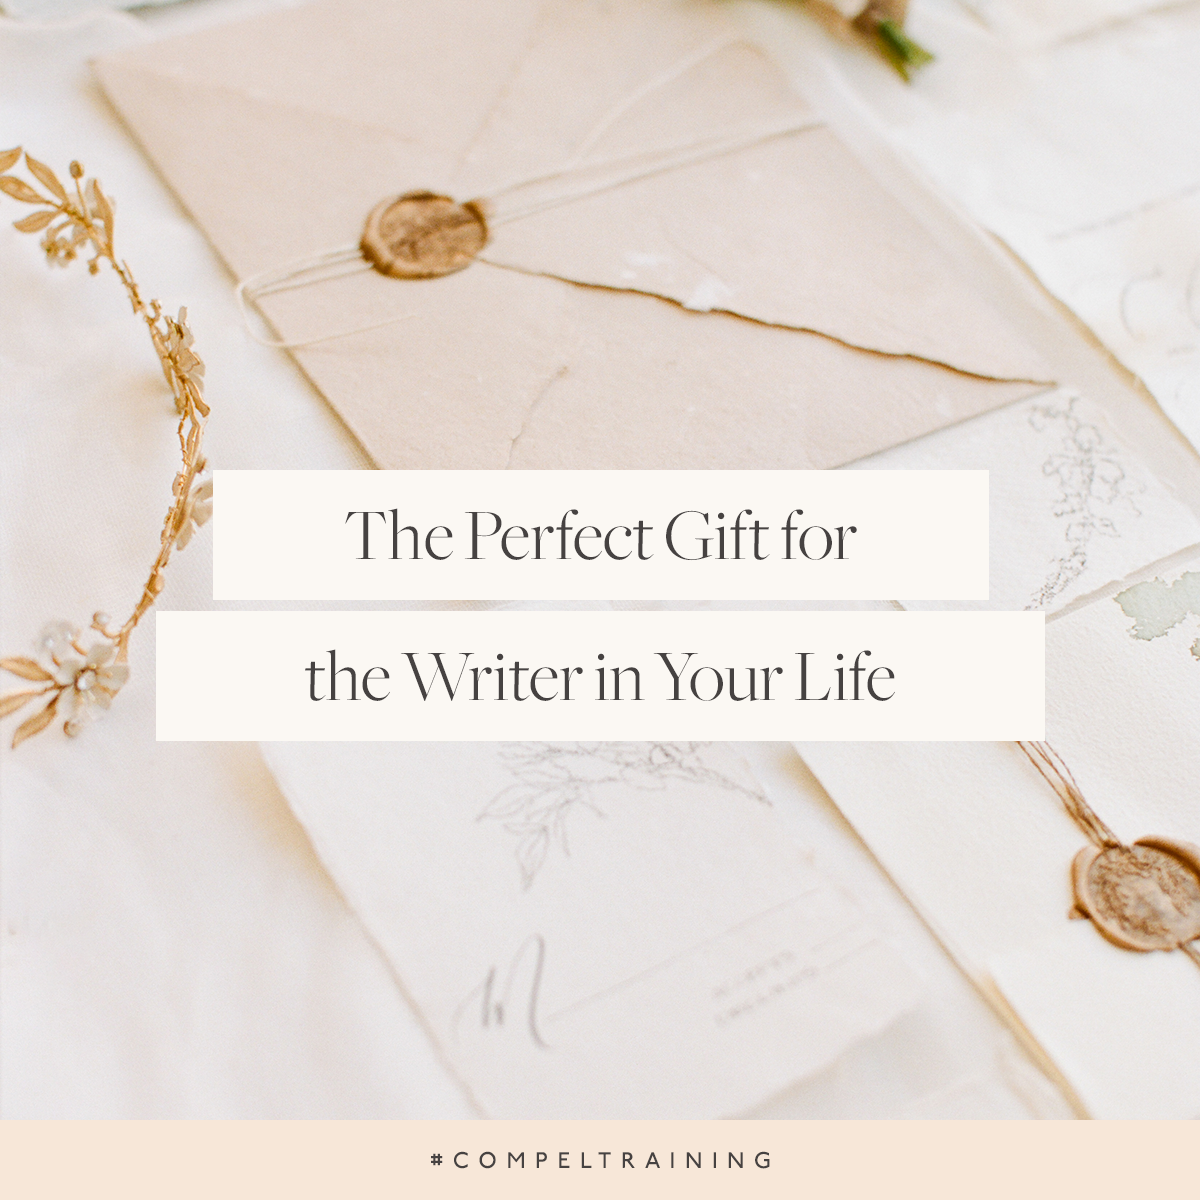 The Perfect Gift for the Writer in Your Life